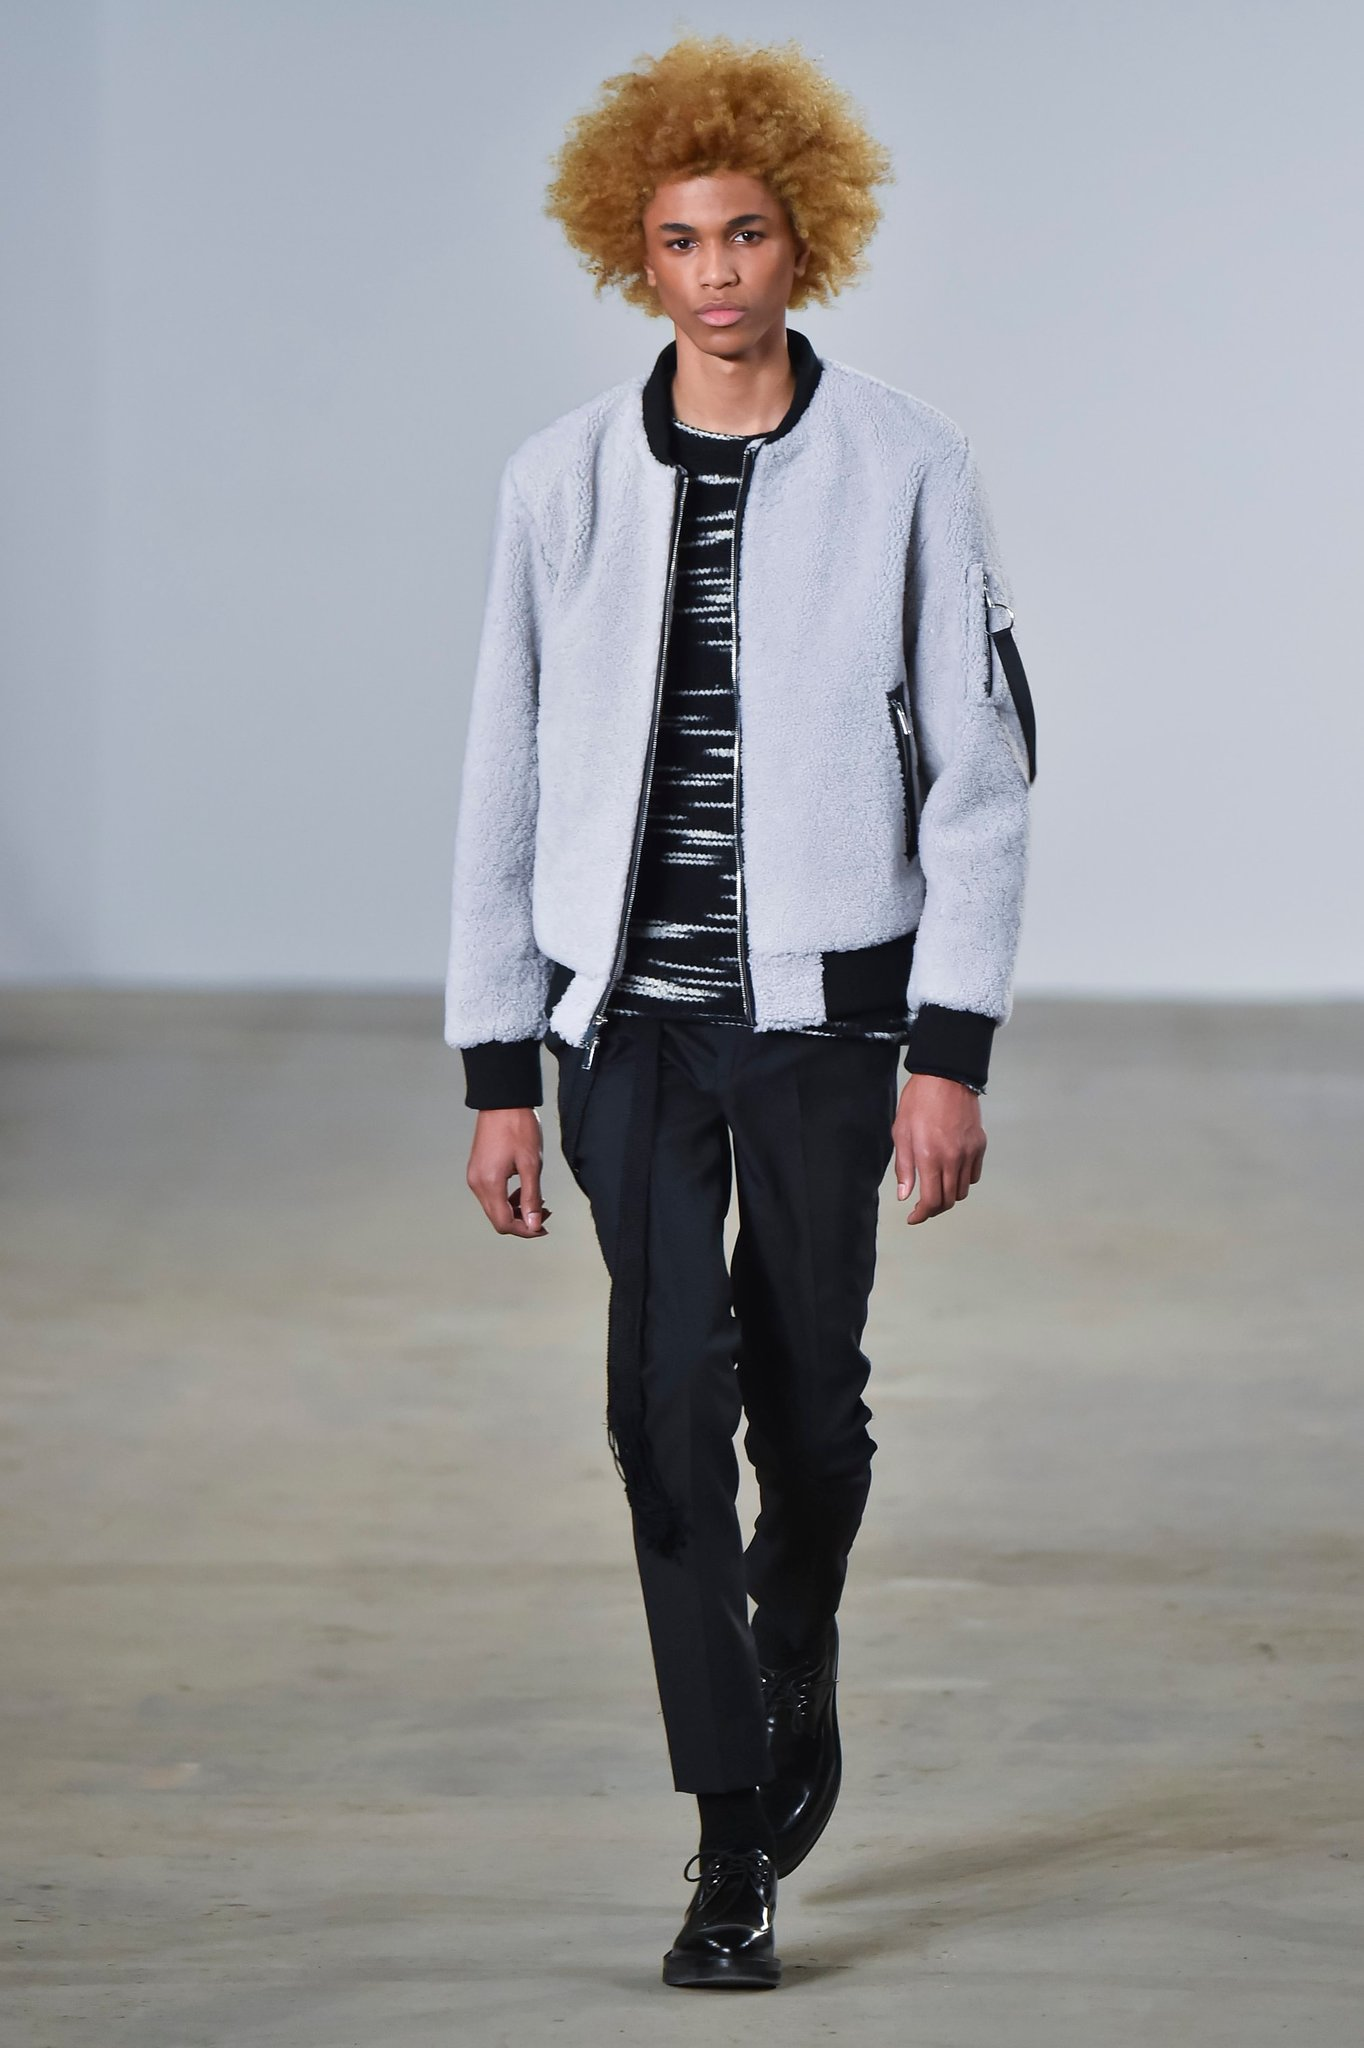 nyfwm, nyfwm aw16, new york fashion week mens, new york fashion week